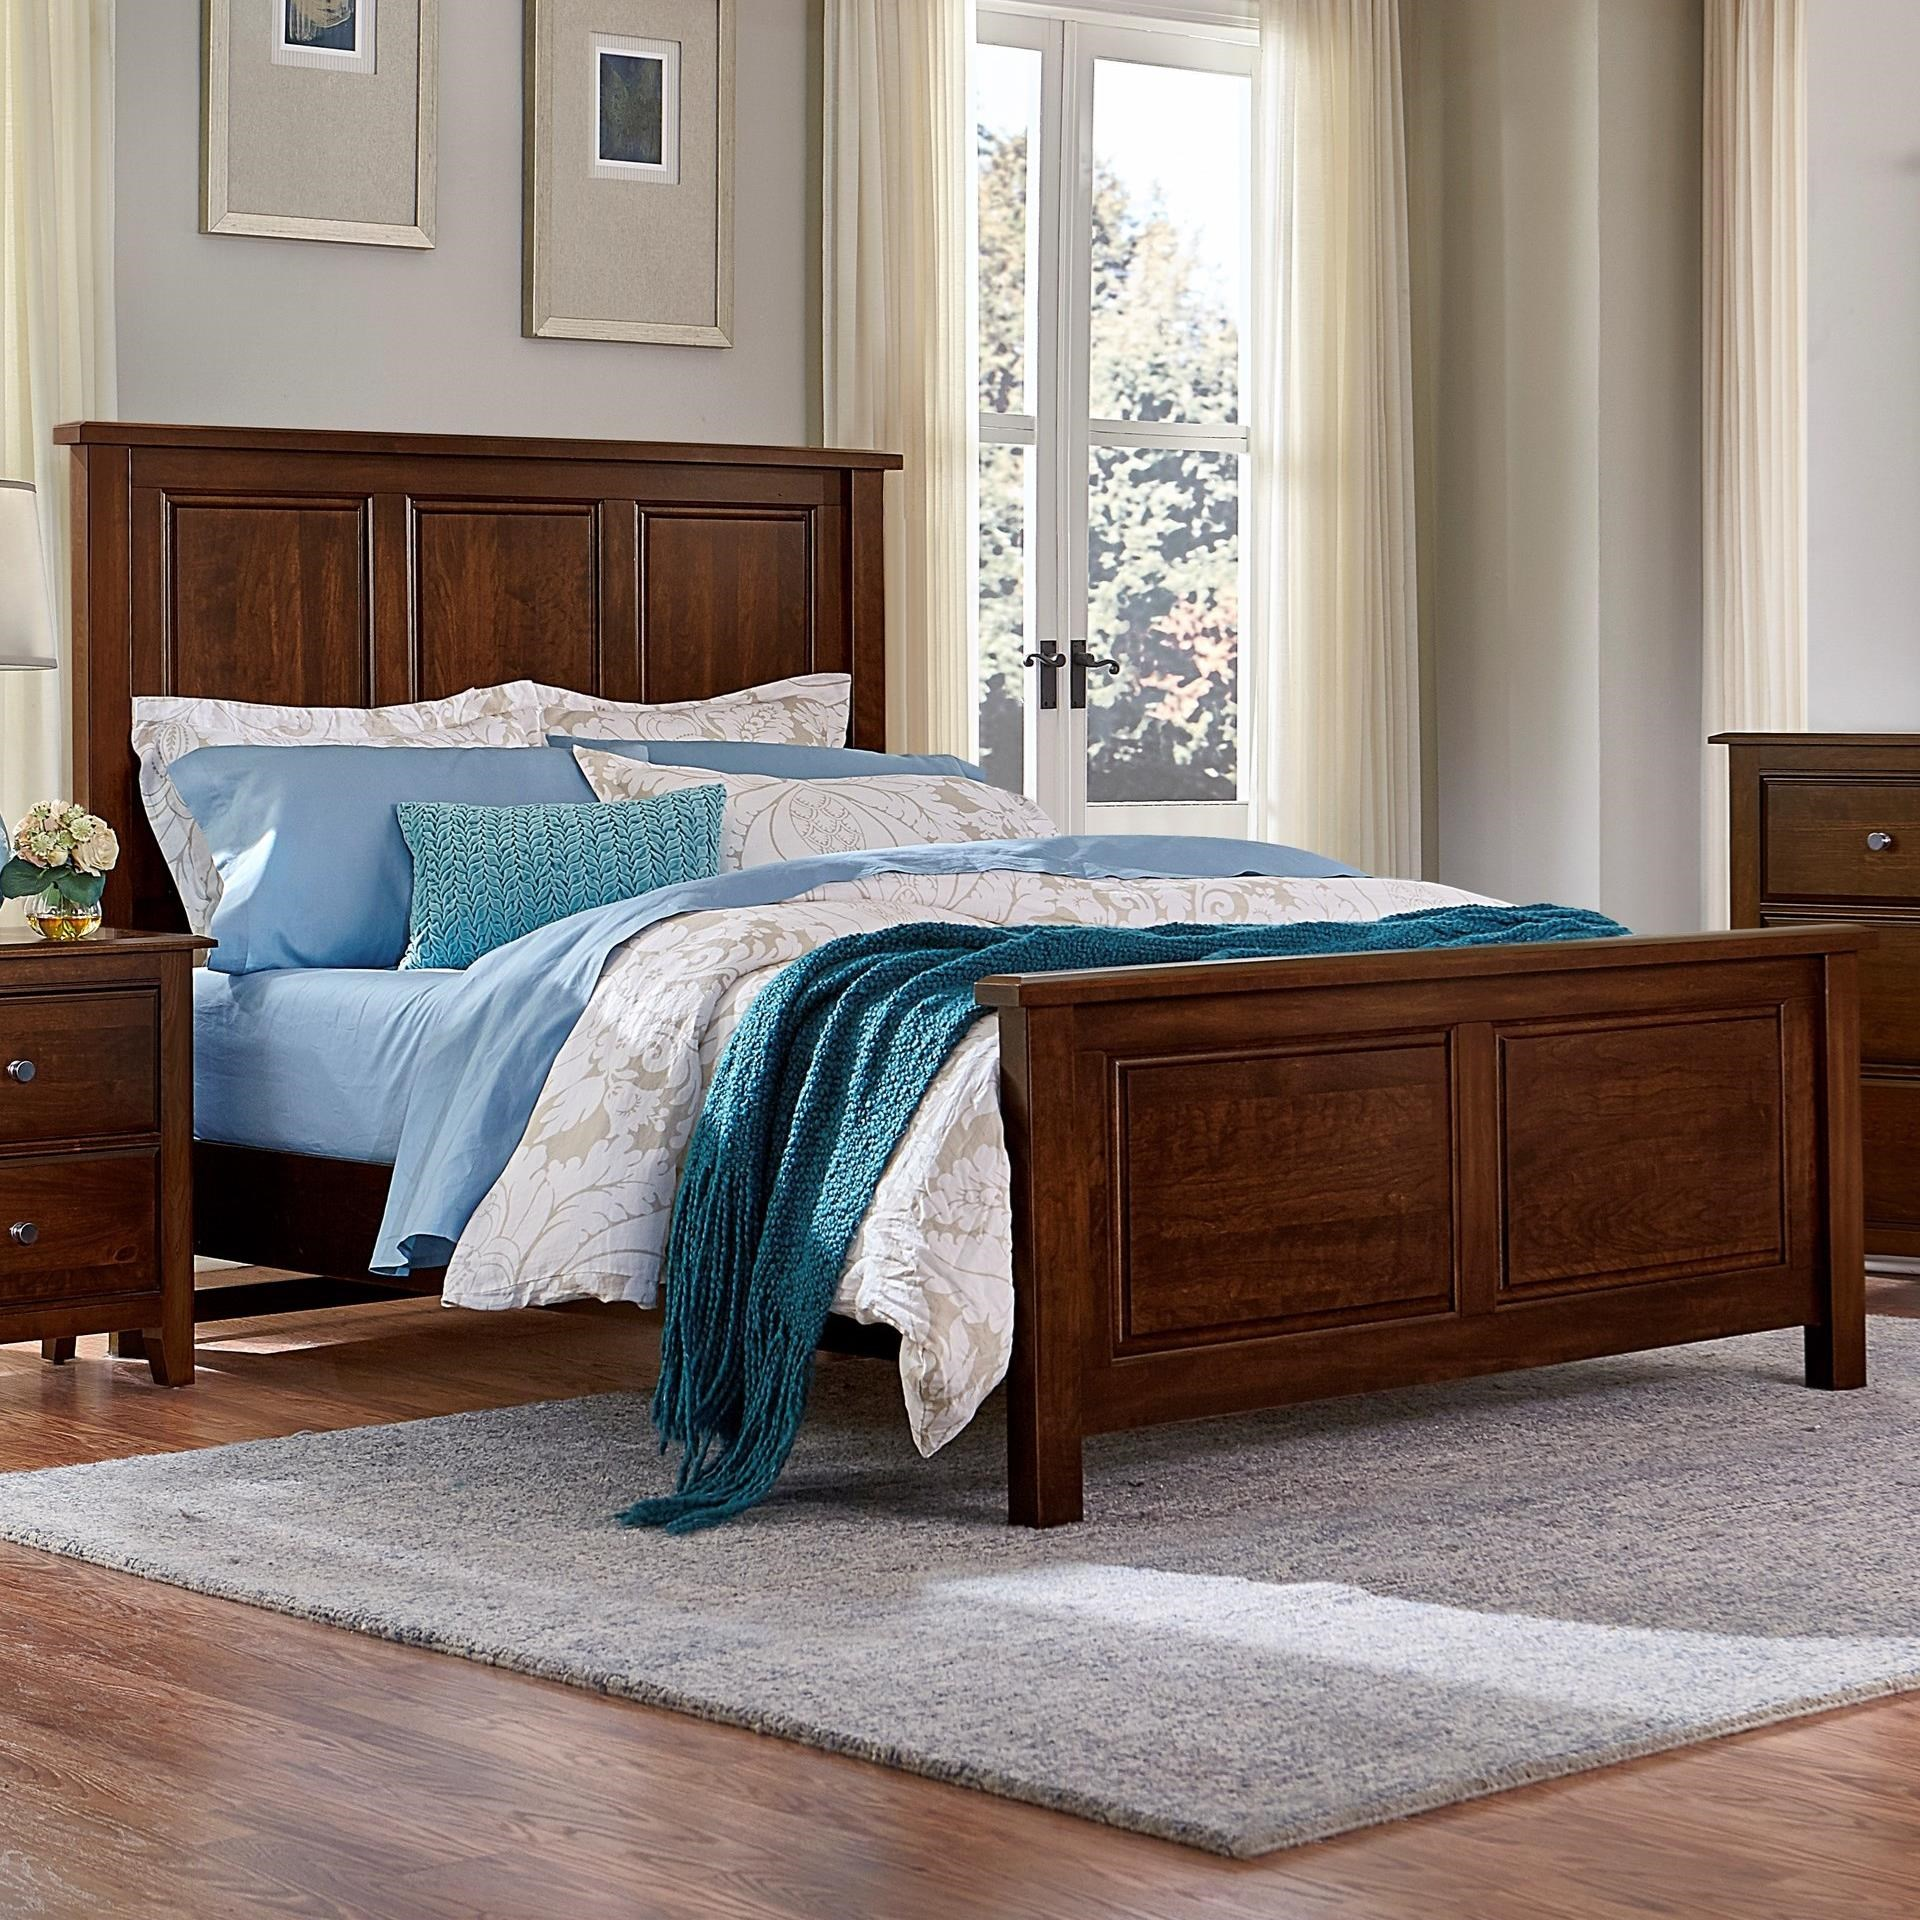 Artisan Choices King Panel Bed by Artisan & Post at Mueller Furniture